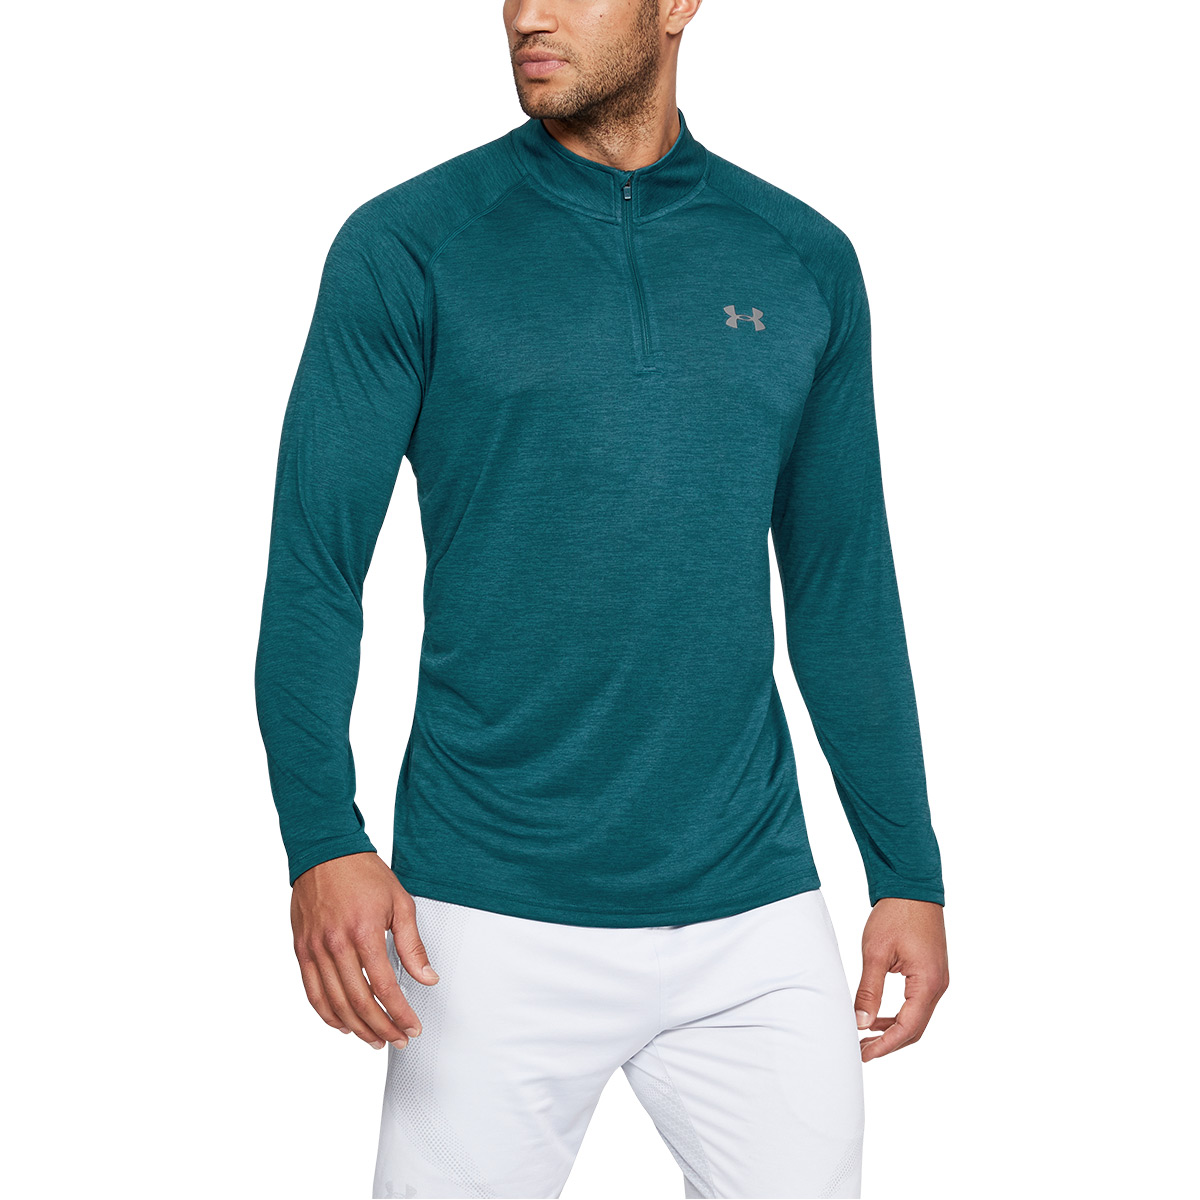 Under-Armour-Mens-UA-Tech-1-4-Zip-Long-Sleeve-Top-Workout-Layer-27-OFF-RRP thumbnail 87